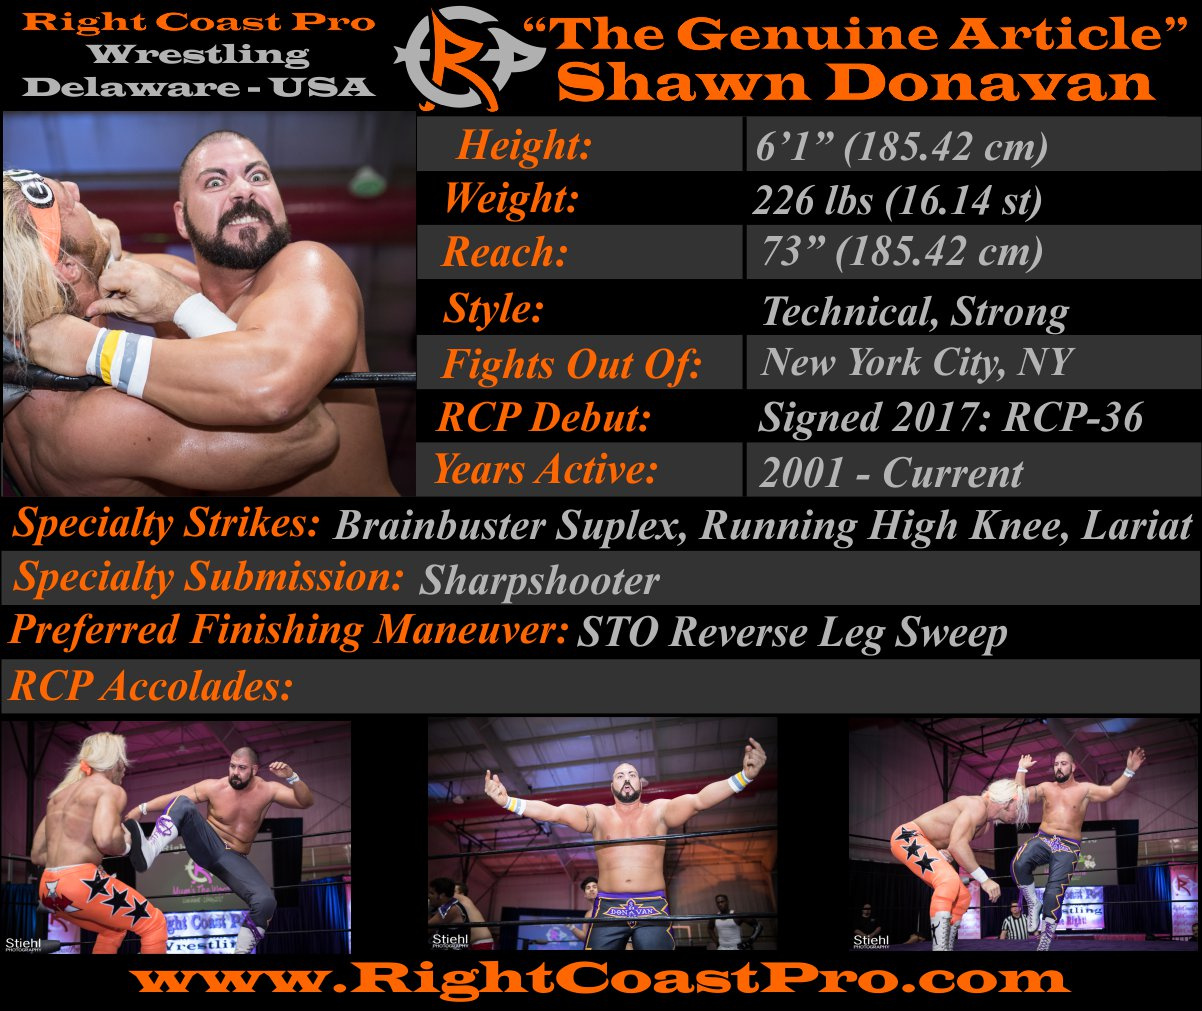 Shawn Donavan Profile RightCoastPro Wrestling Delaware